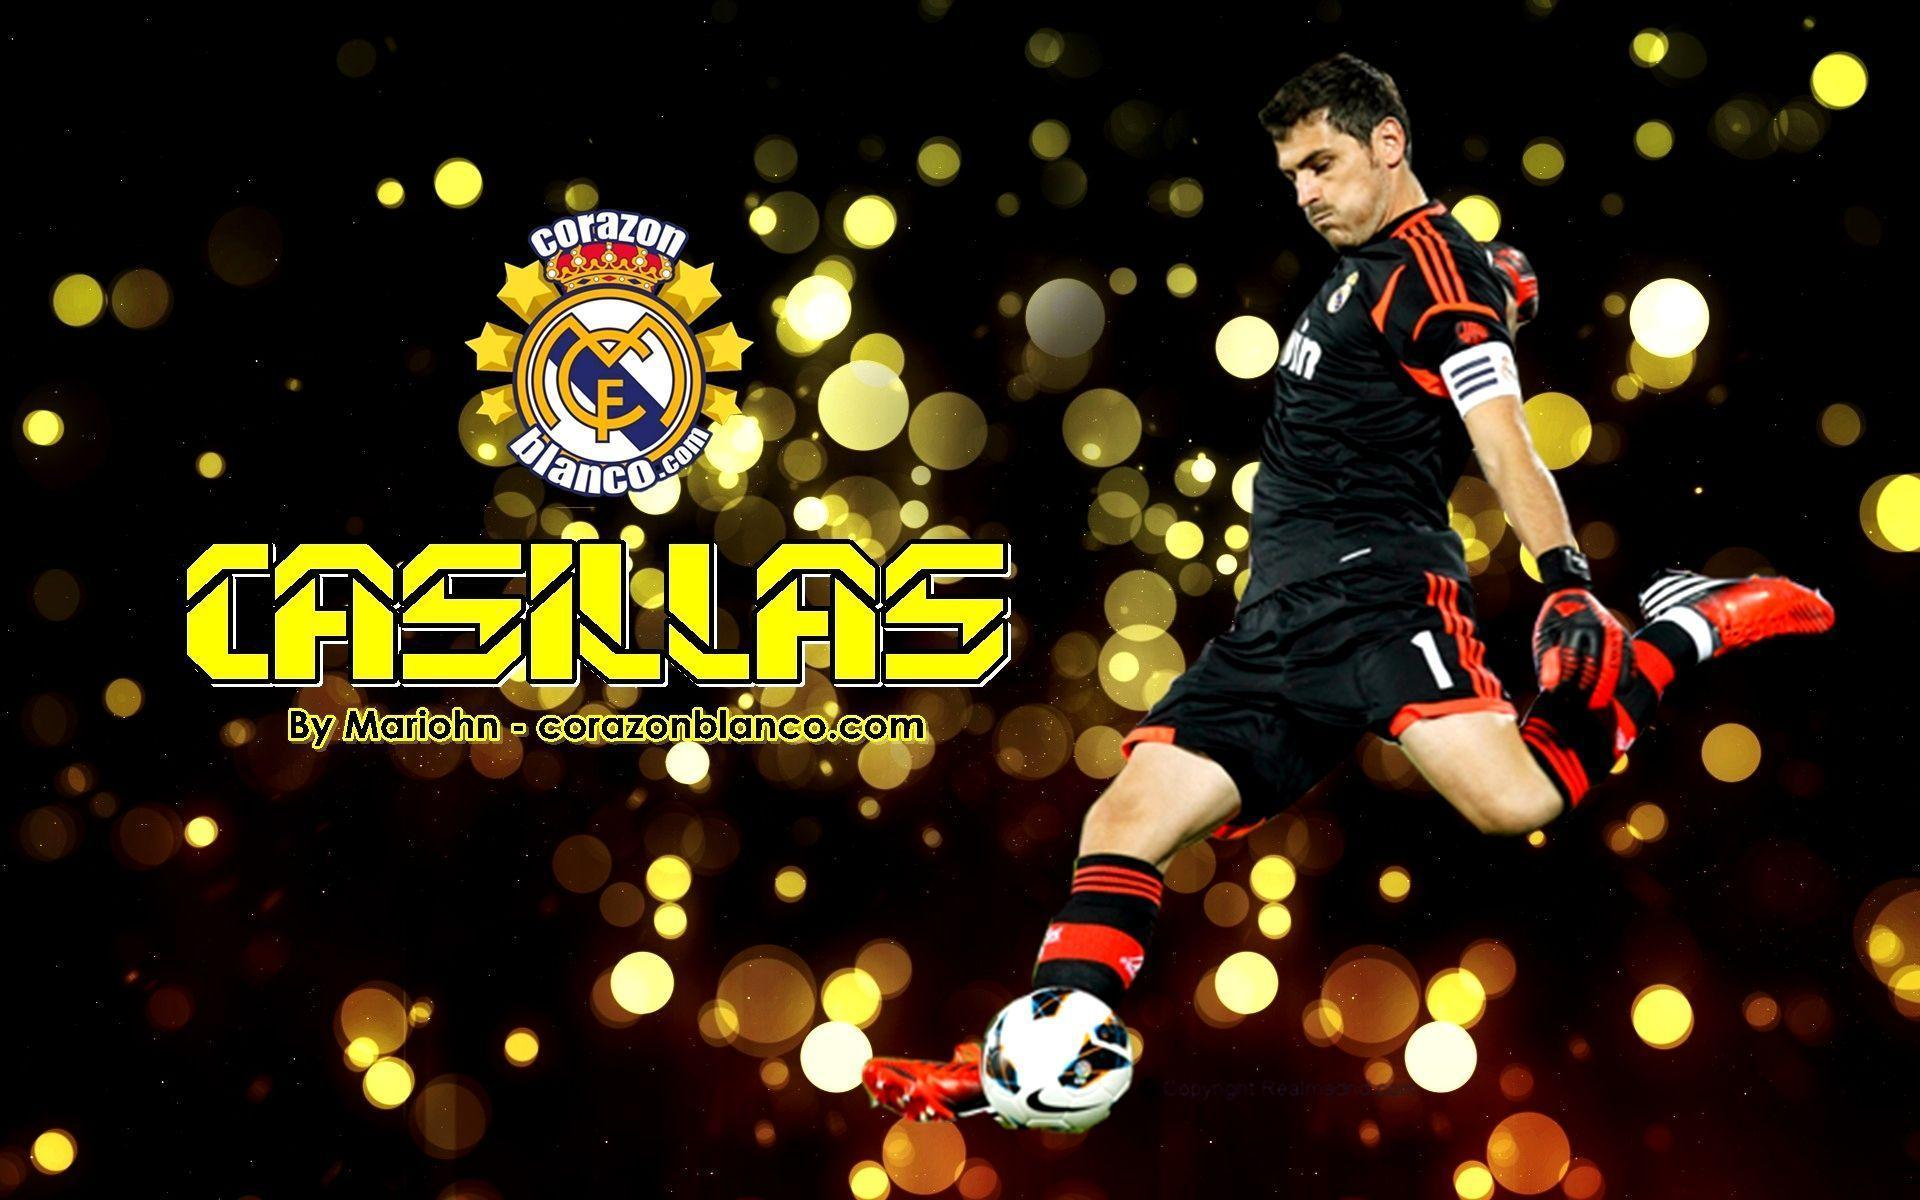 The goalkeeper Real Madrid Iker Casillas wallpapers and images ...